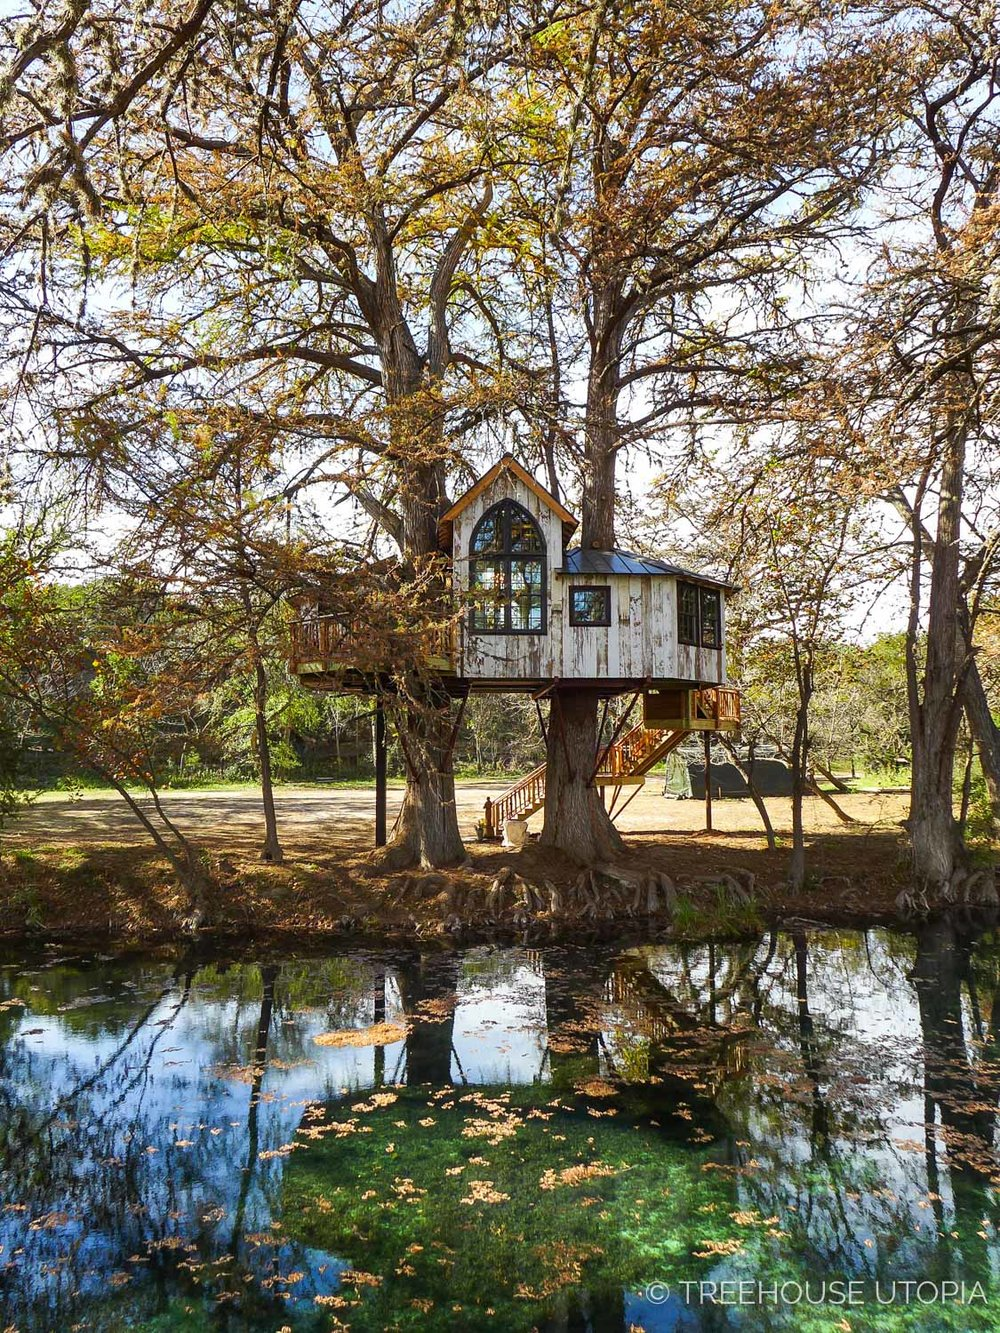 Chapelle_Treehouse_Utopia_2017-286.jpg